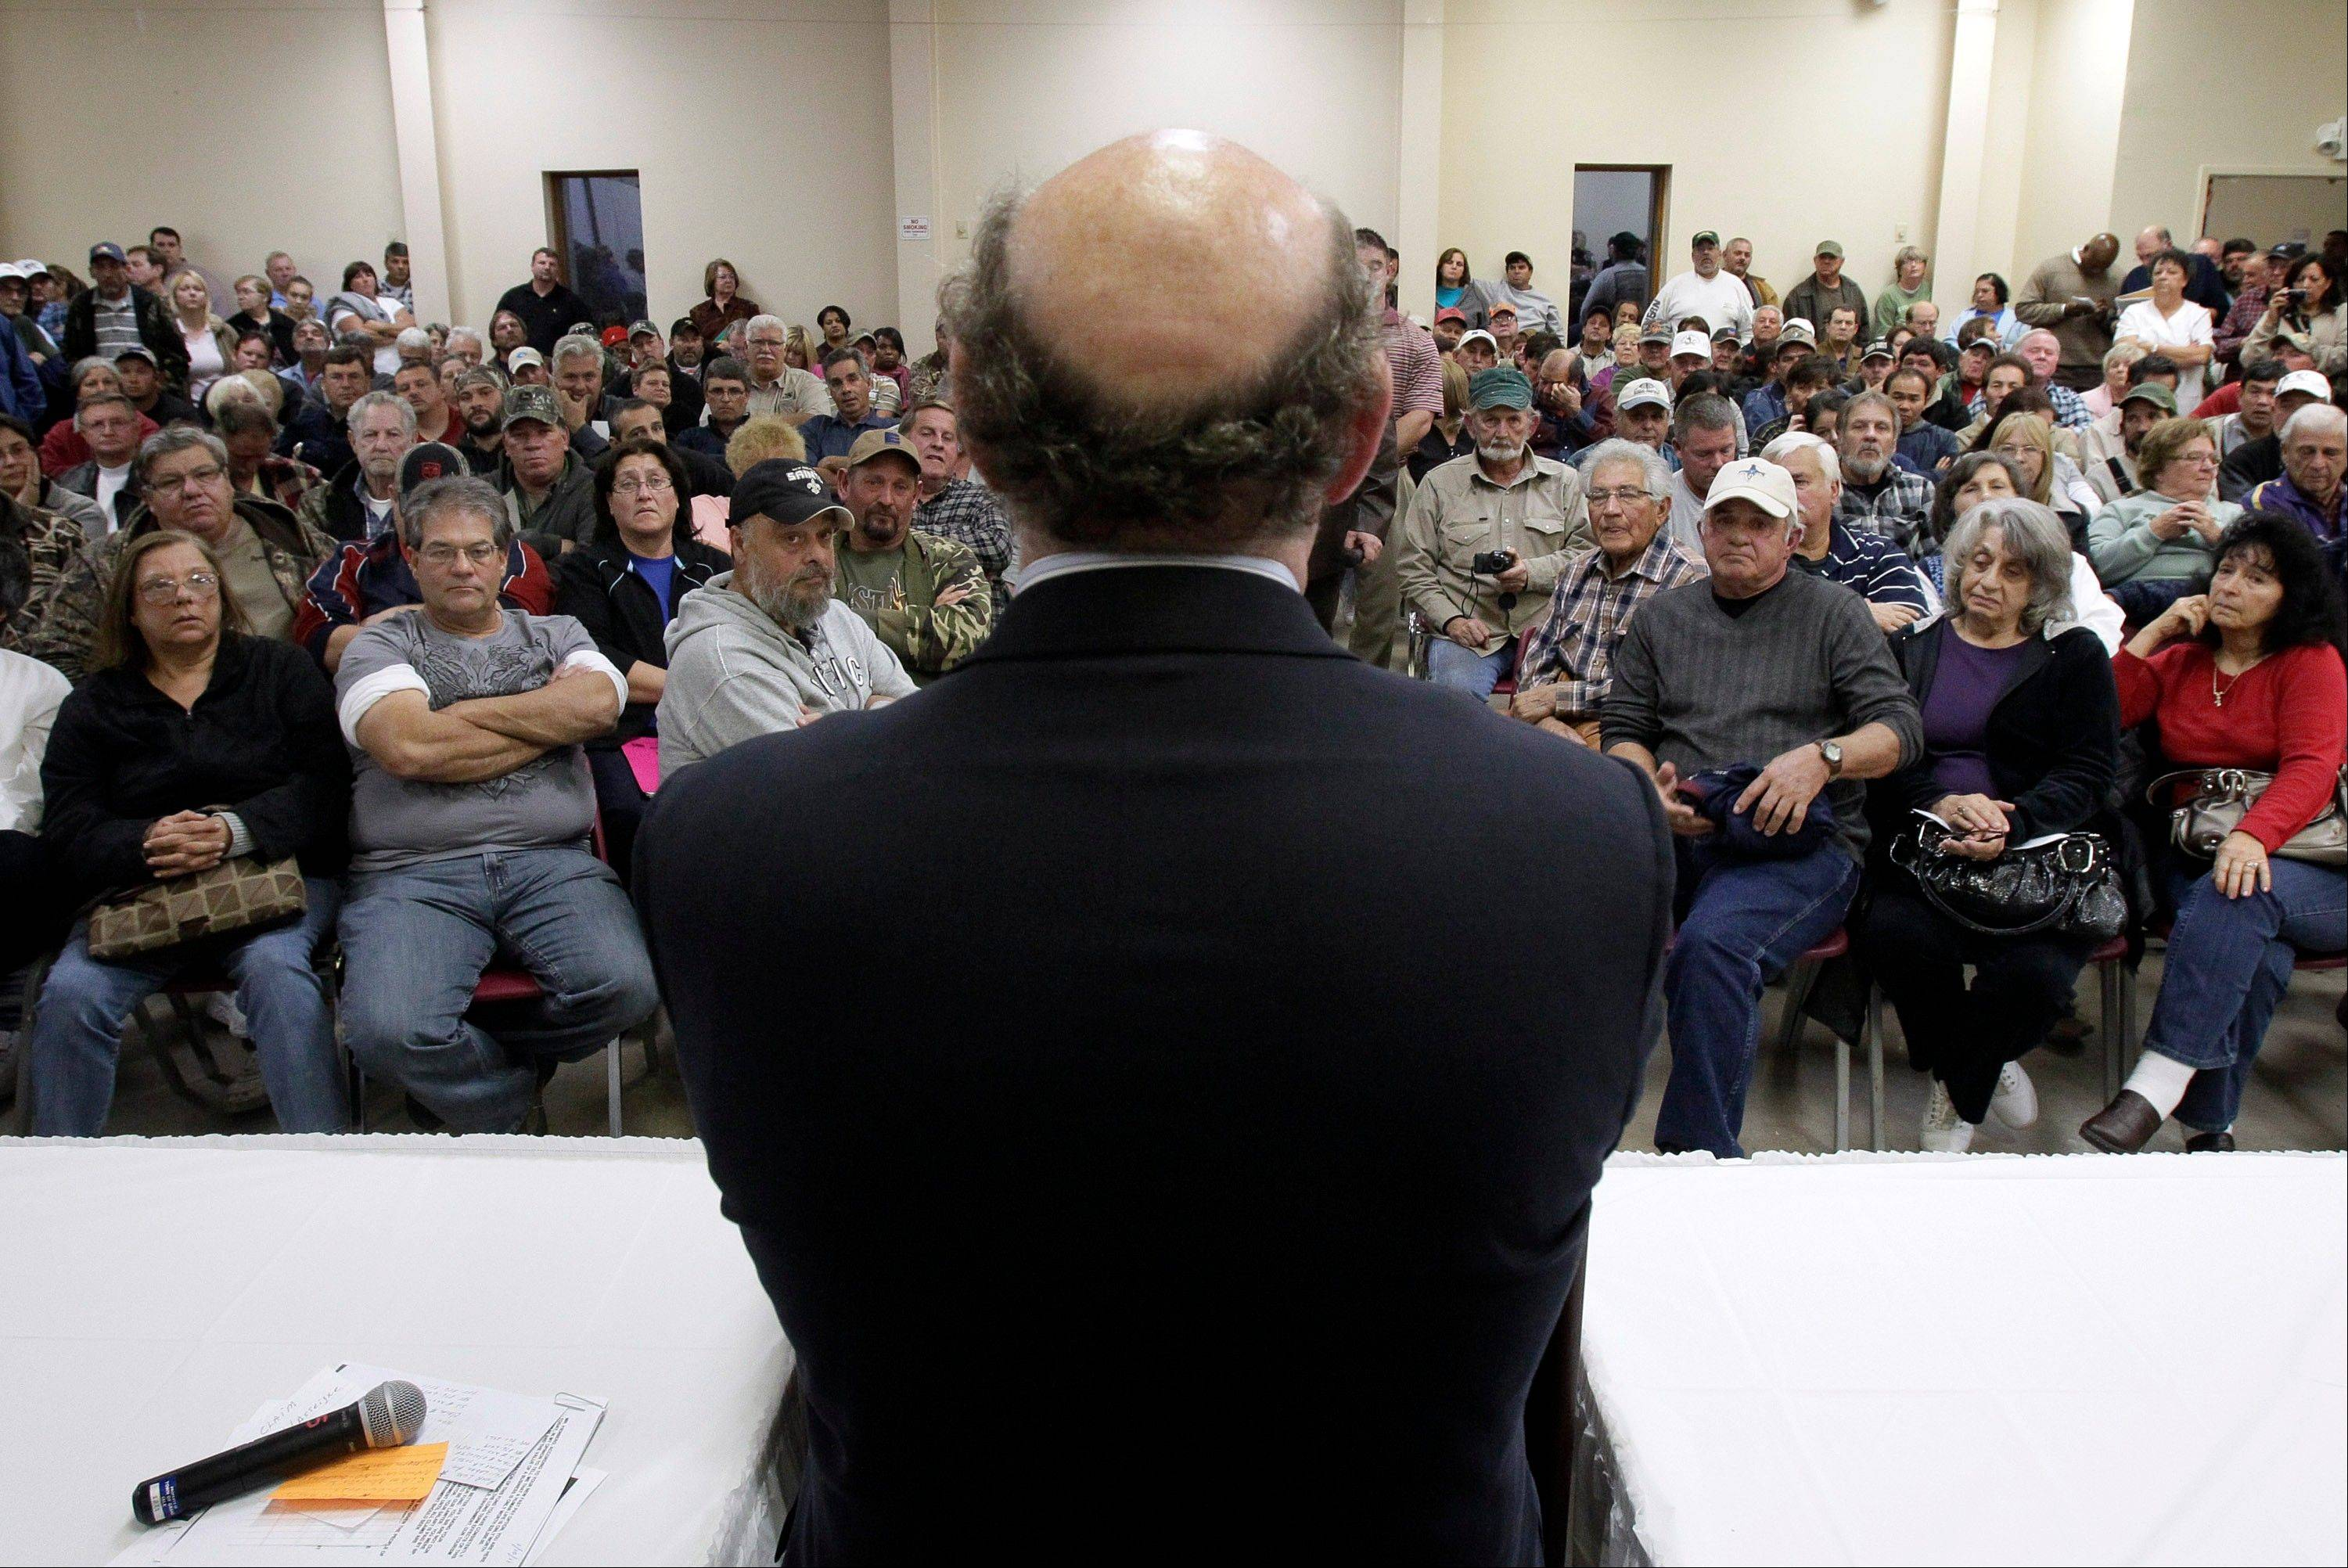 In this Jan. 10, 2011, photo, claimants listen to BP oil spill fund administrator Kenneth Feinberg, center, as he speaks at a town hall meeting in Grand Isle, La. In court filings Monday, the oil giant BP asked a federal judge to disregard objections from a fraction of claimants and give final approval to a proposed multibillion-dollar settlement for economic damages from the Gulf spill.